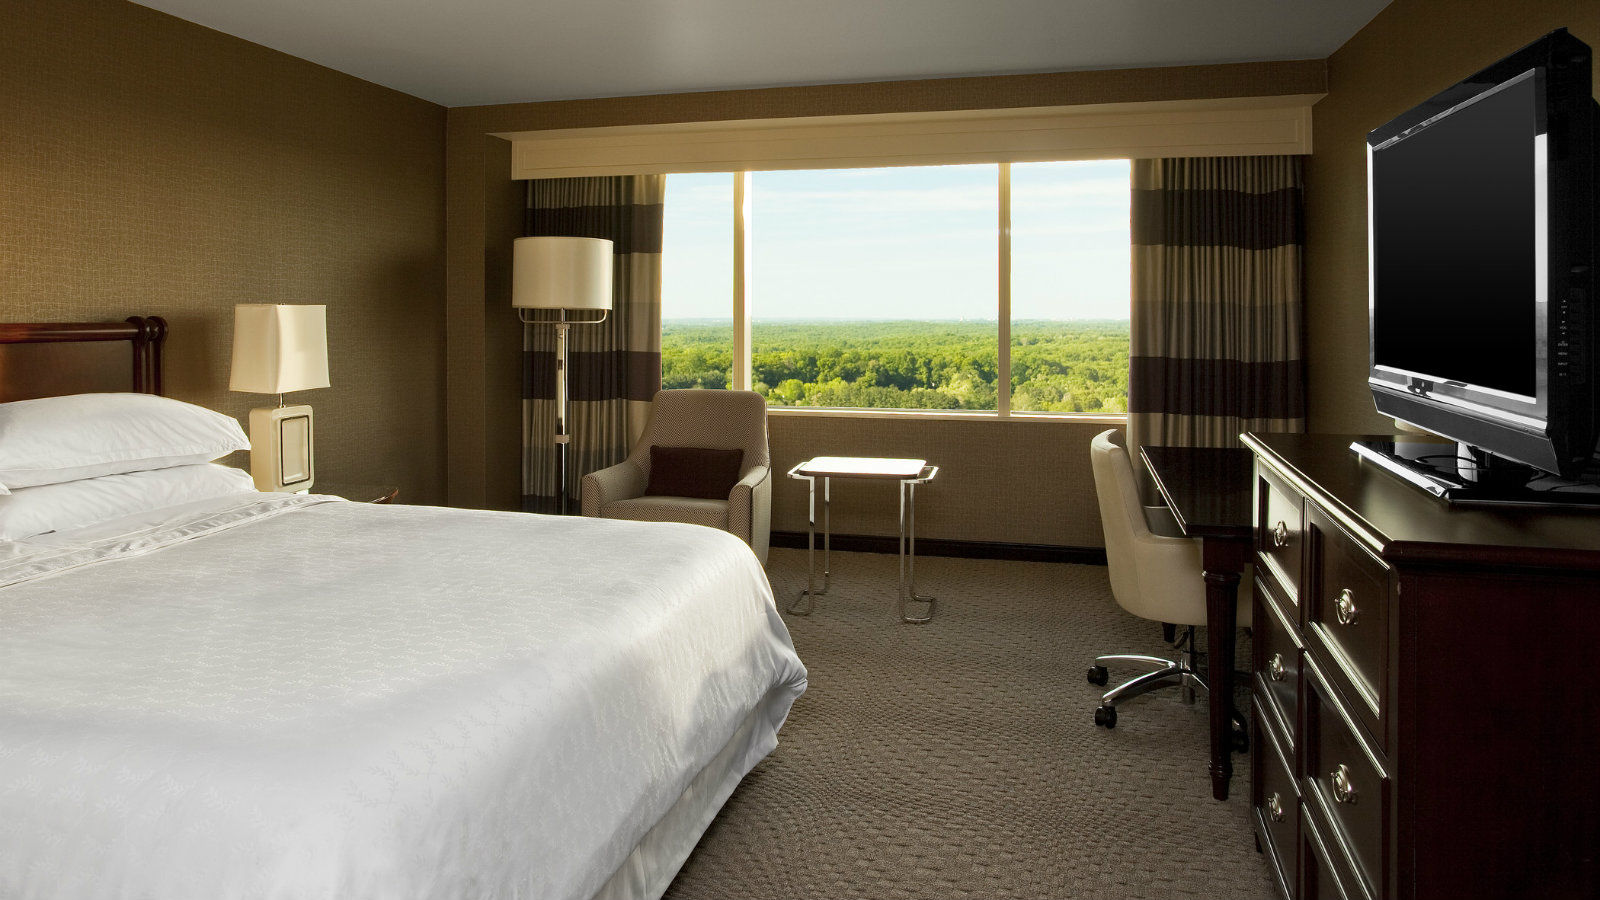 Sheraton Tysons Hotel - Government Travel